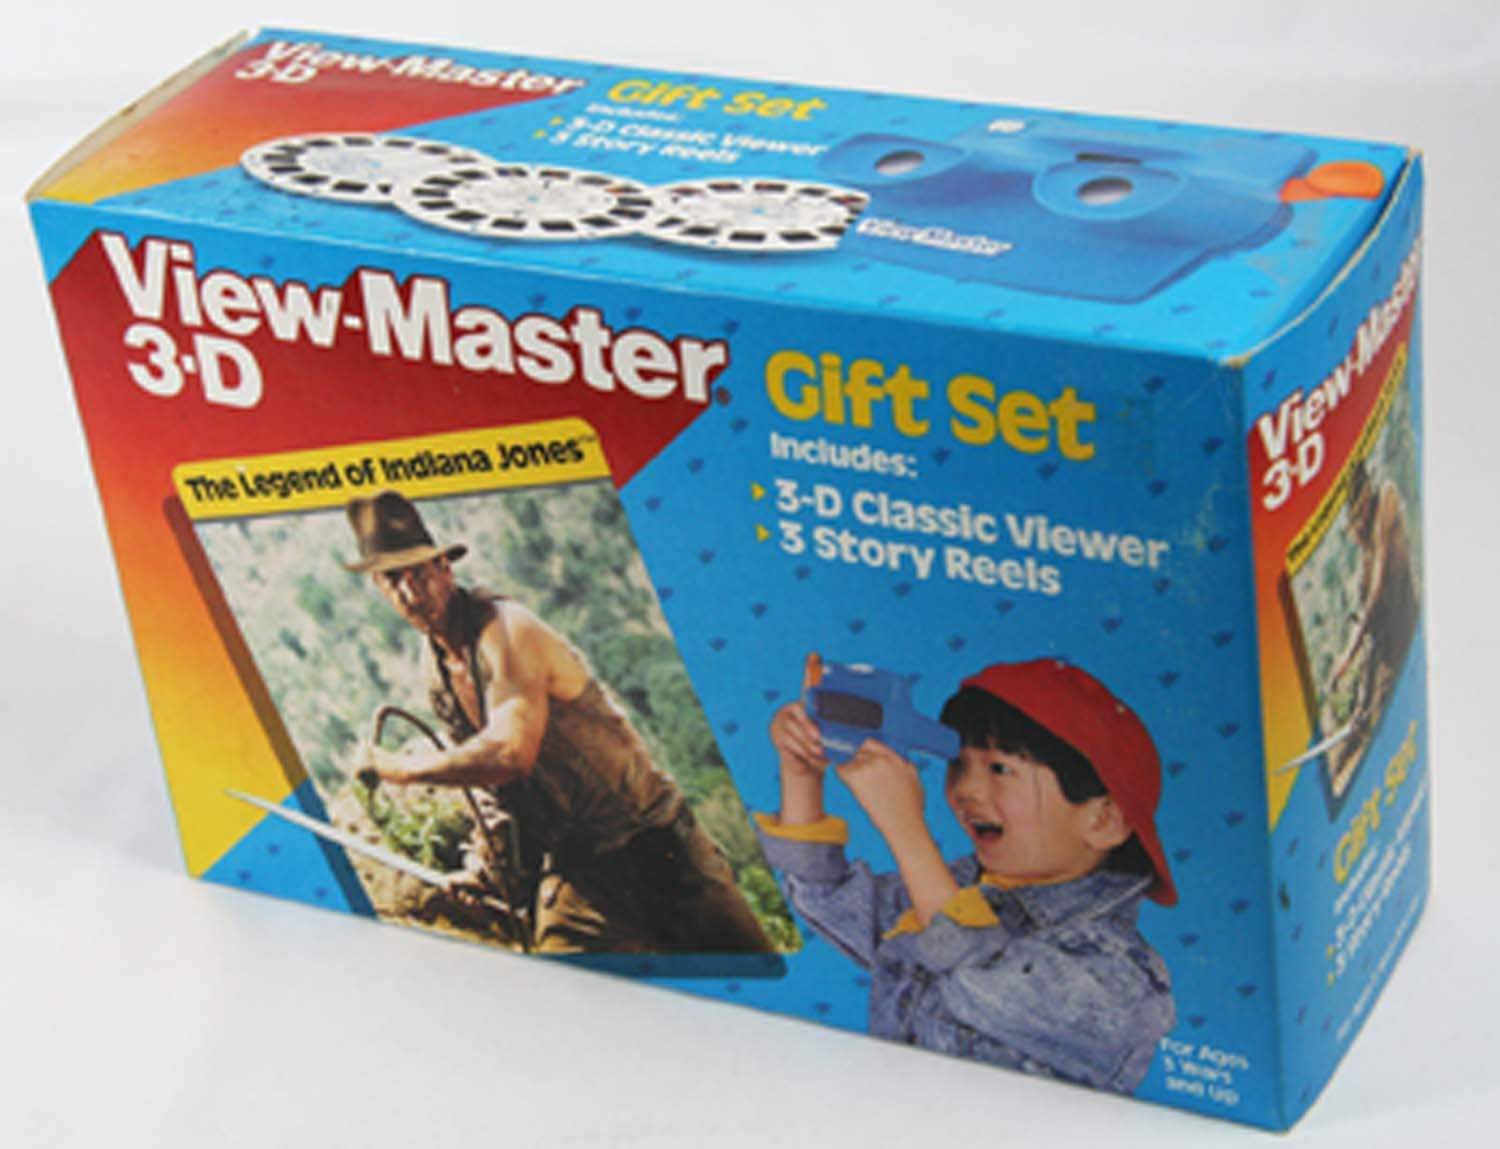 ViewMaster -Legend of Indiana Jones Gift Set - Viewer & 3 Reels - NEW Never Open by 3Dstereo Gift Set (Image #1)